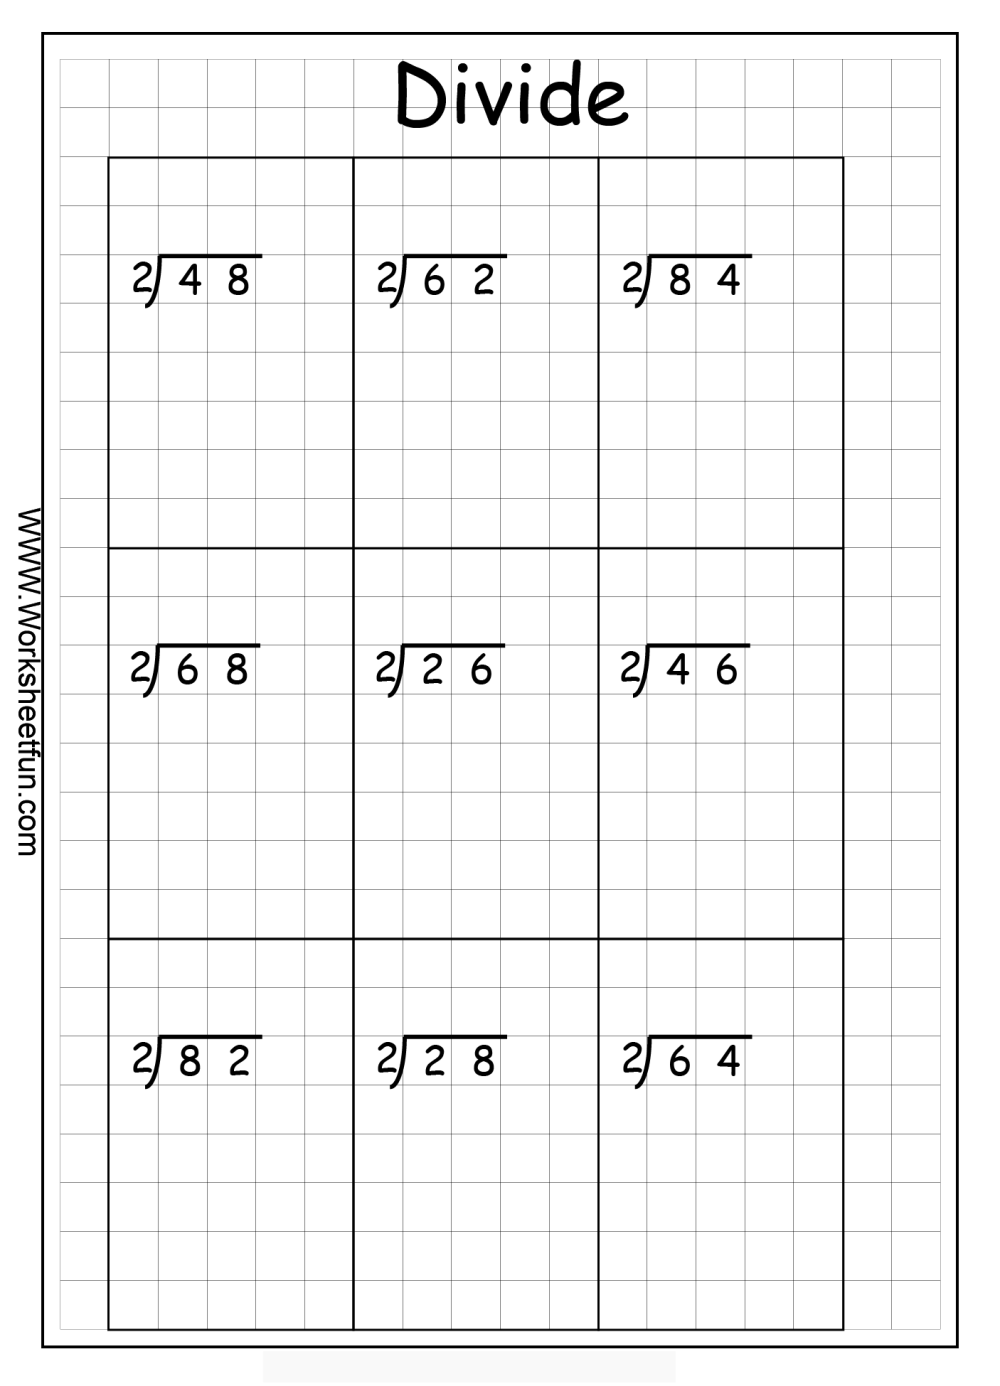 medium resolution of Long division homework help - Division worksheets for grades 3